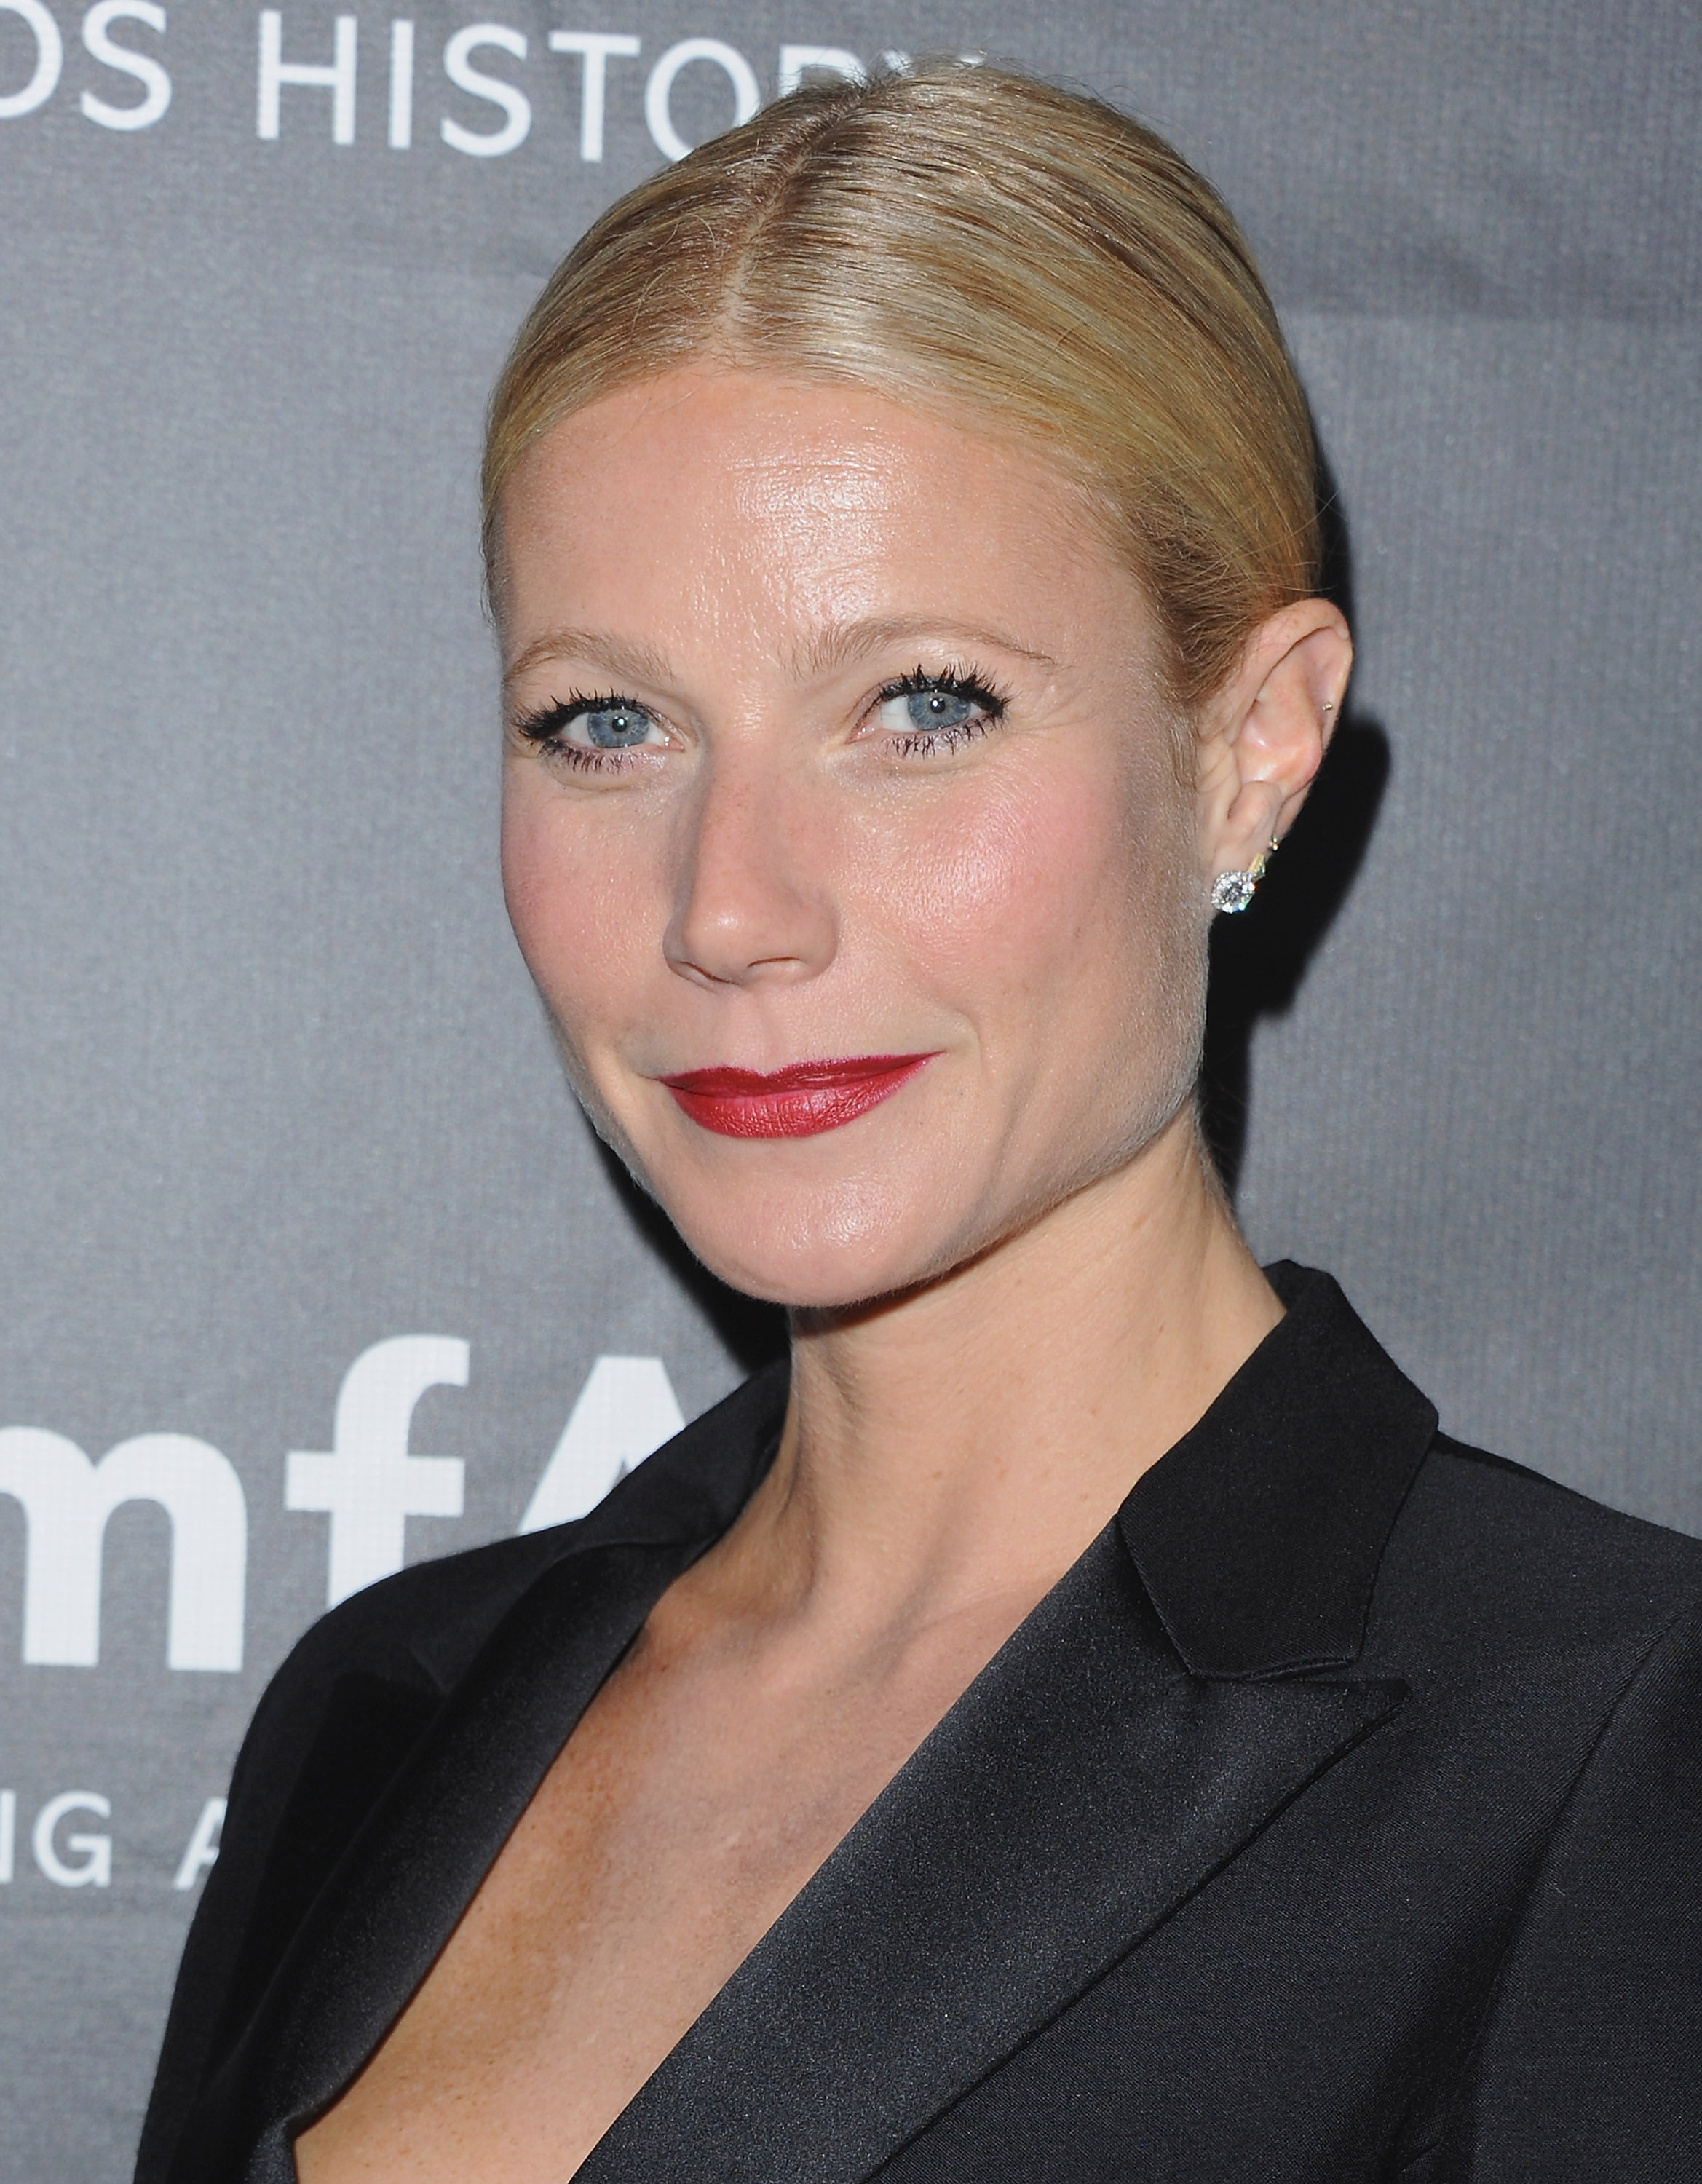 Actress Gwyneth Paltrow arrives at the 2014 amfAR LA Inspiration Gala at Milk Studios on October 29, 2014 in Hollywood, California.